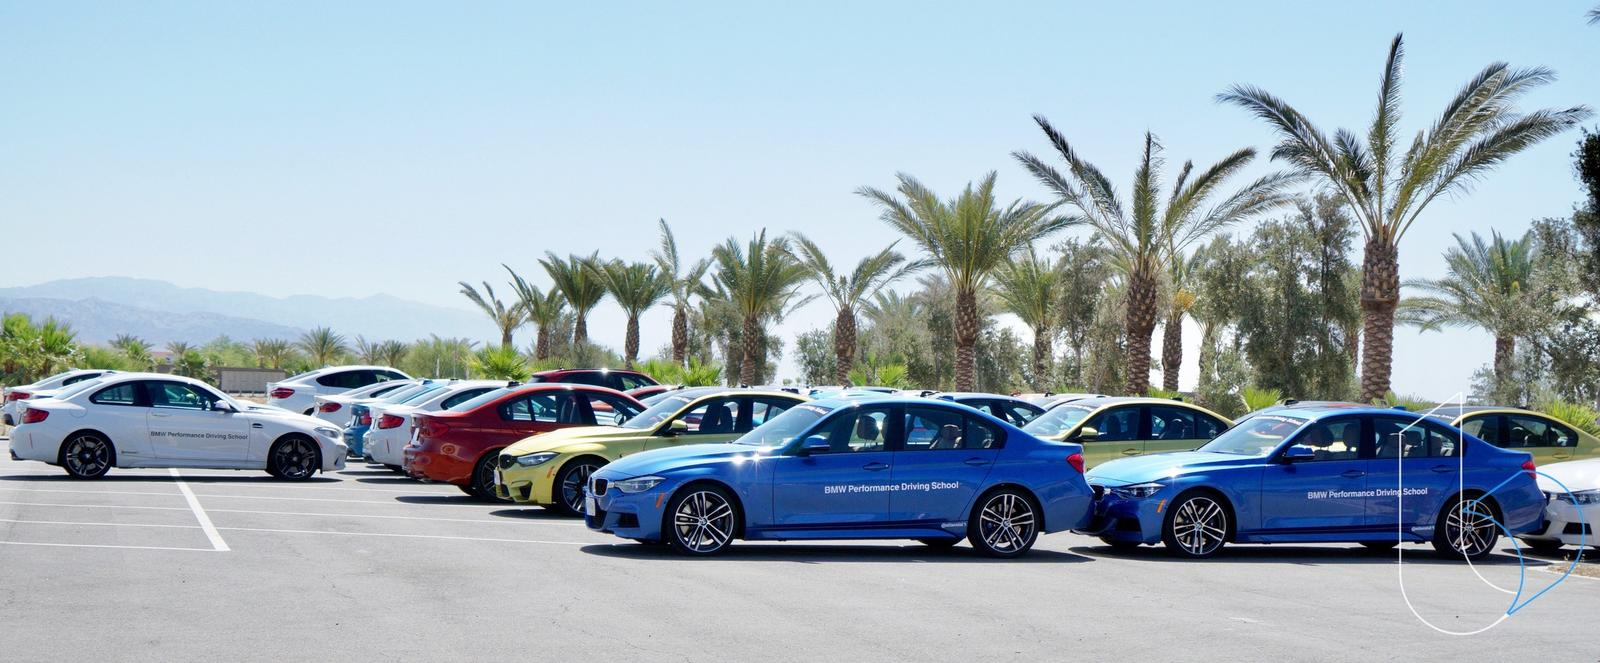 Performance Driving School >> I Drove 130mph In An M3 At Bmw S Performance Driving School And It